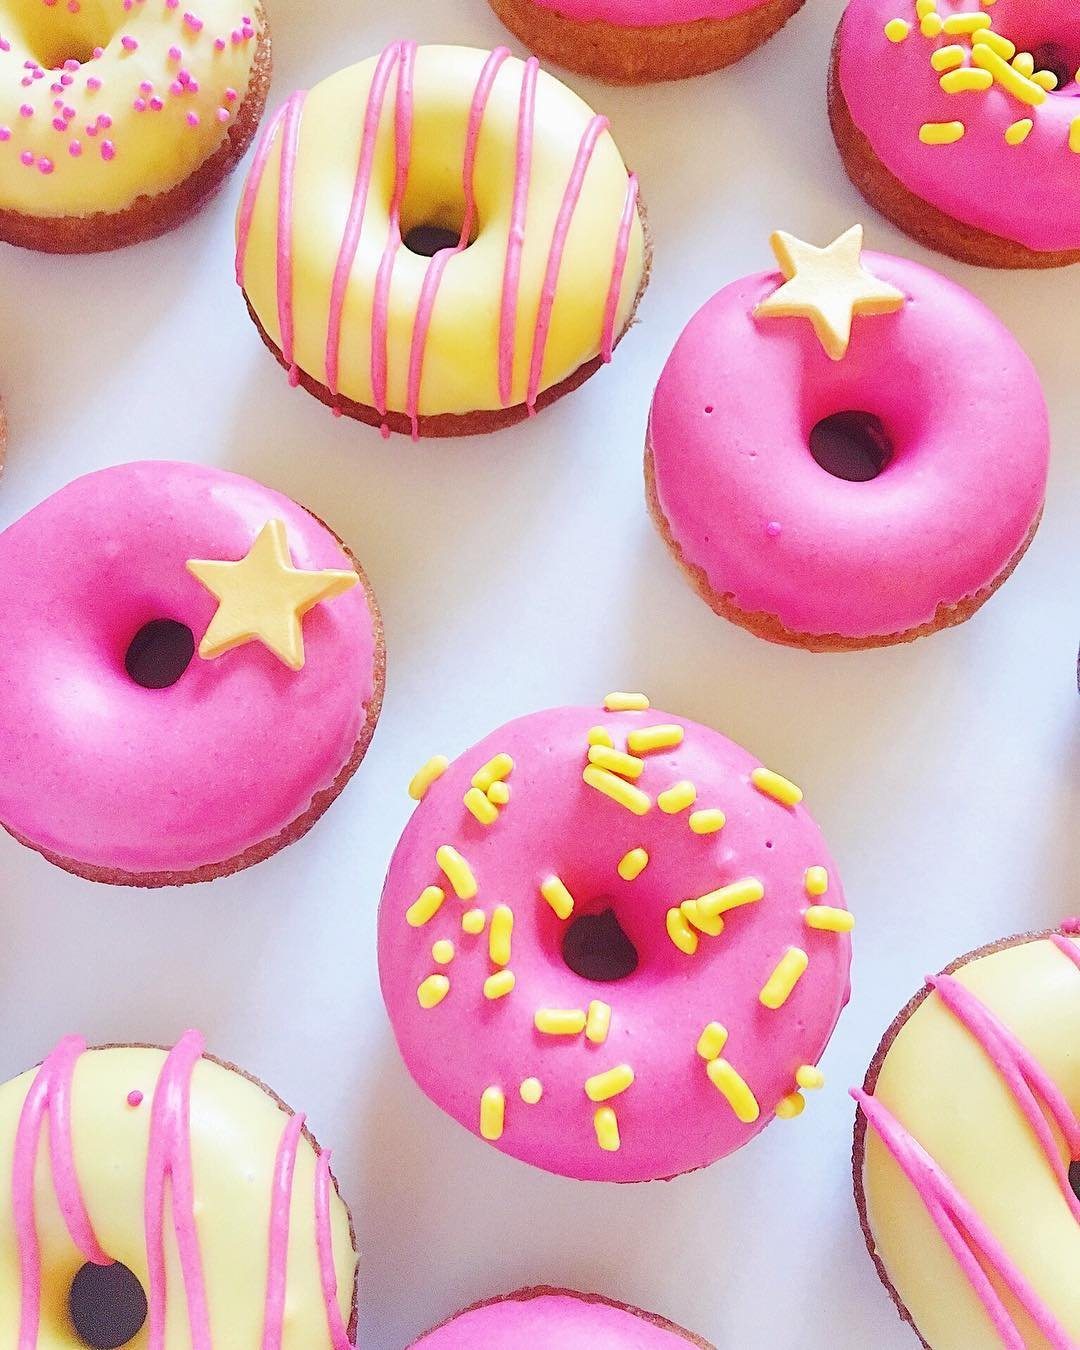 Sprinkles Bakery_sweets_mini donuts_pink gold